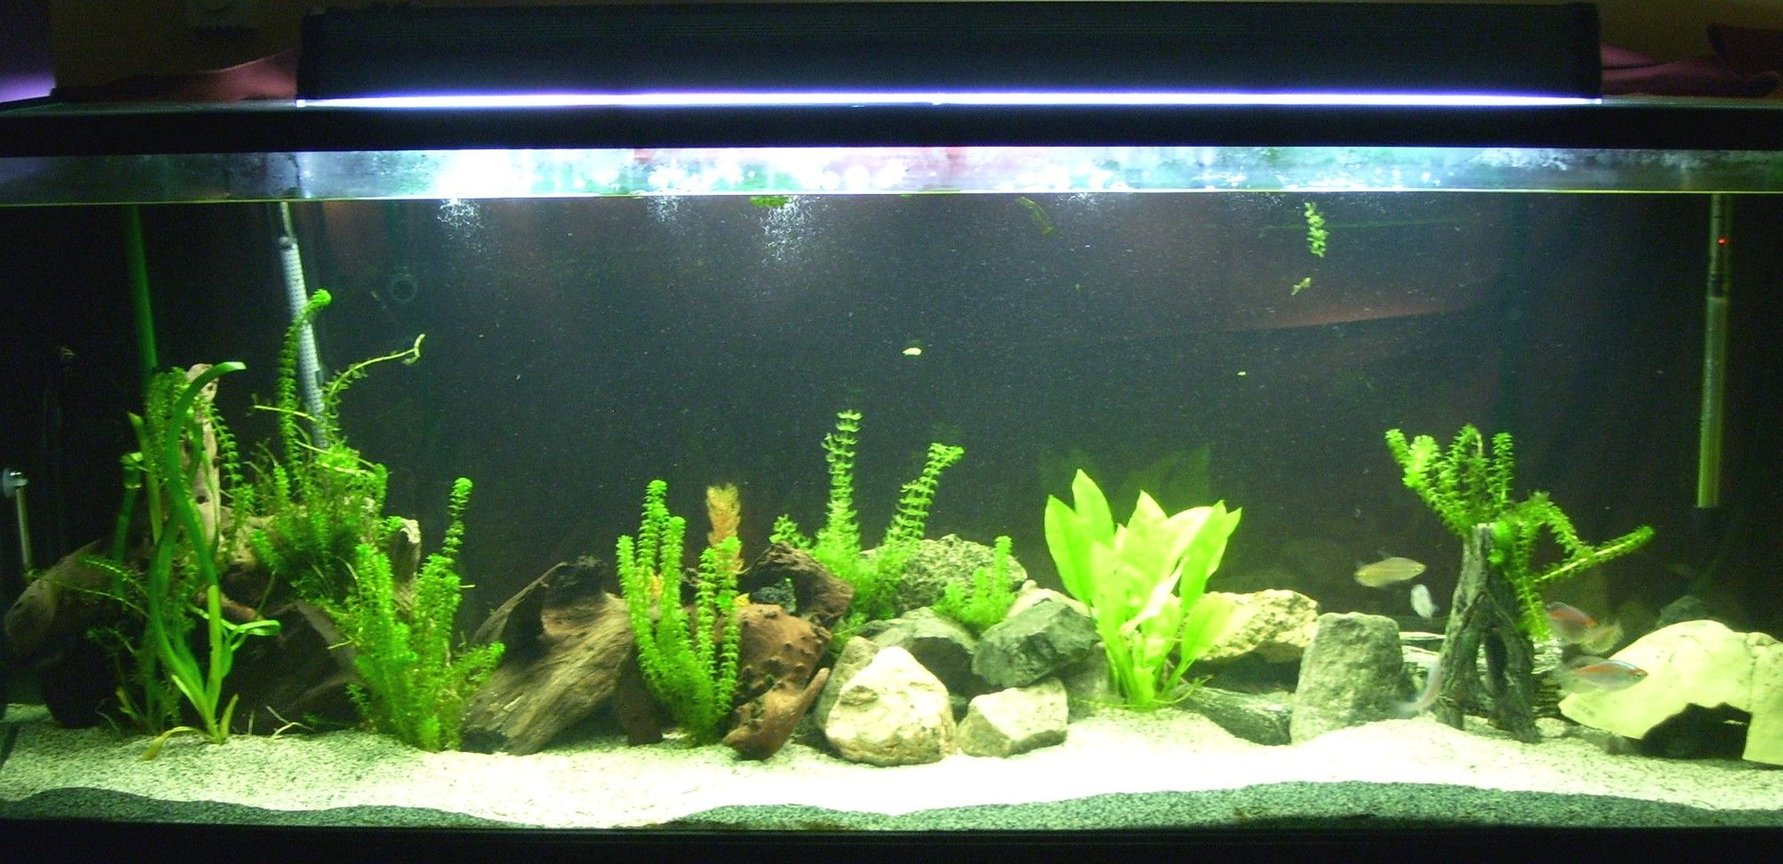 150 gallons freshwater fish tank (mostly fish and non-living decorations) - 150 gallons